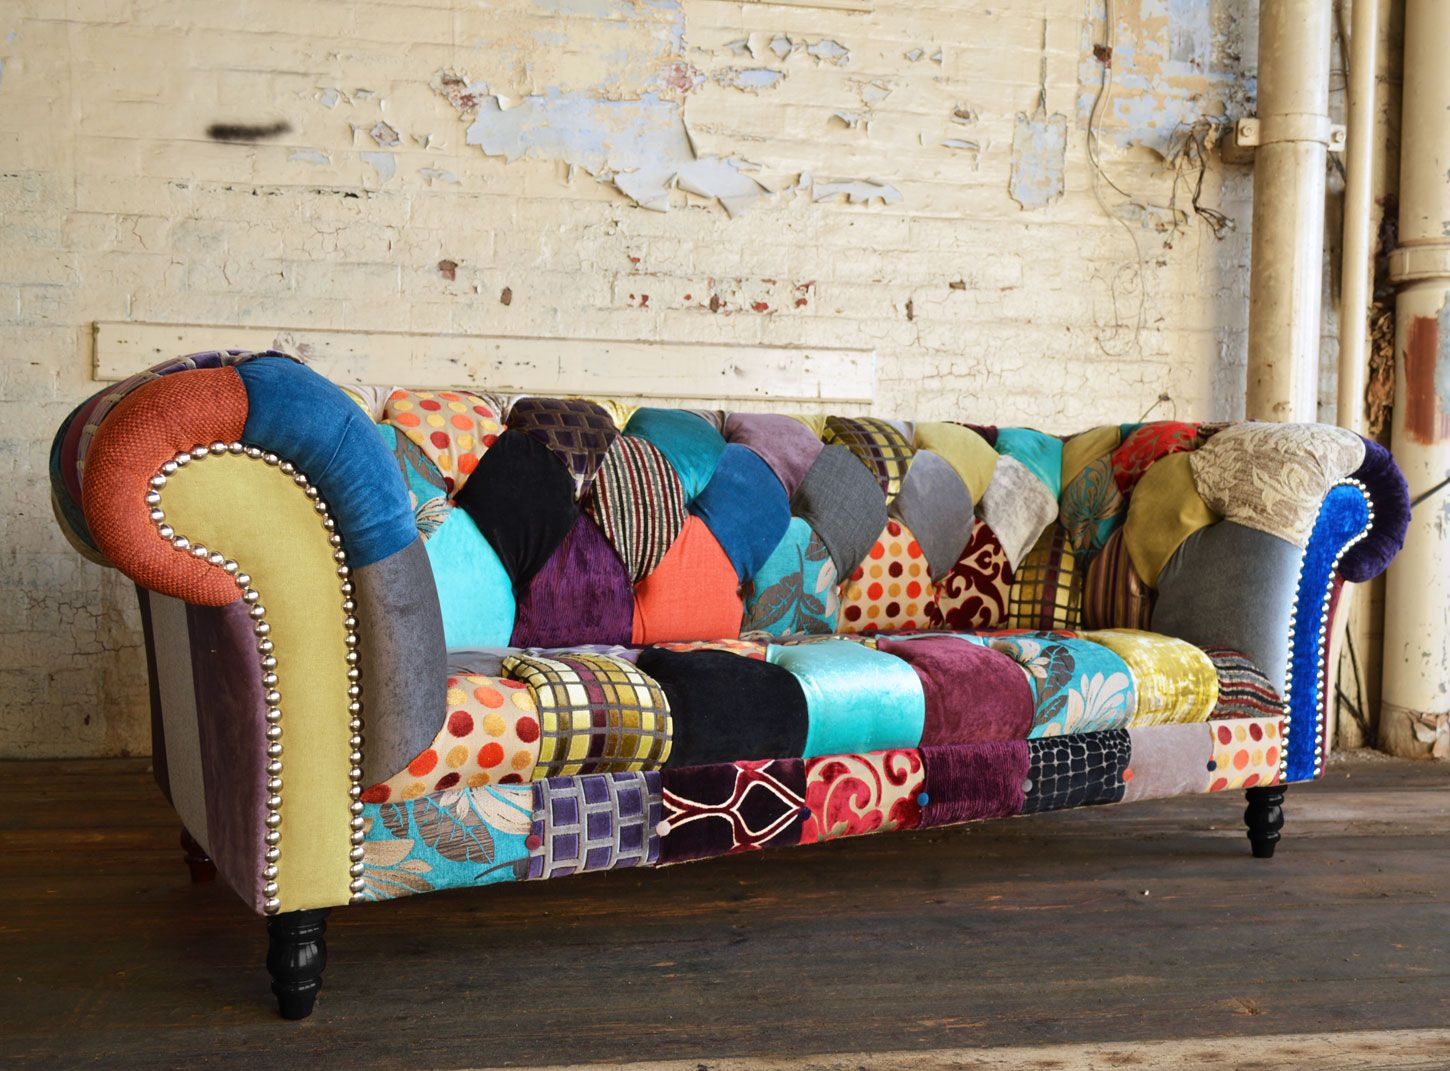 Full Size of Sofa Patchwork Malaysia Quilt Cover Covers Uk Dfs Bed For Sale Informa Upholstered Soda Handmadesofa Furniture De Sede Angebote Lounge Garten Big Mit Sofa Sofa Patchwork